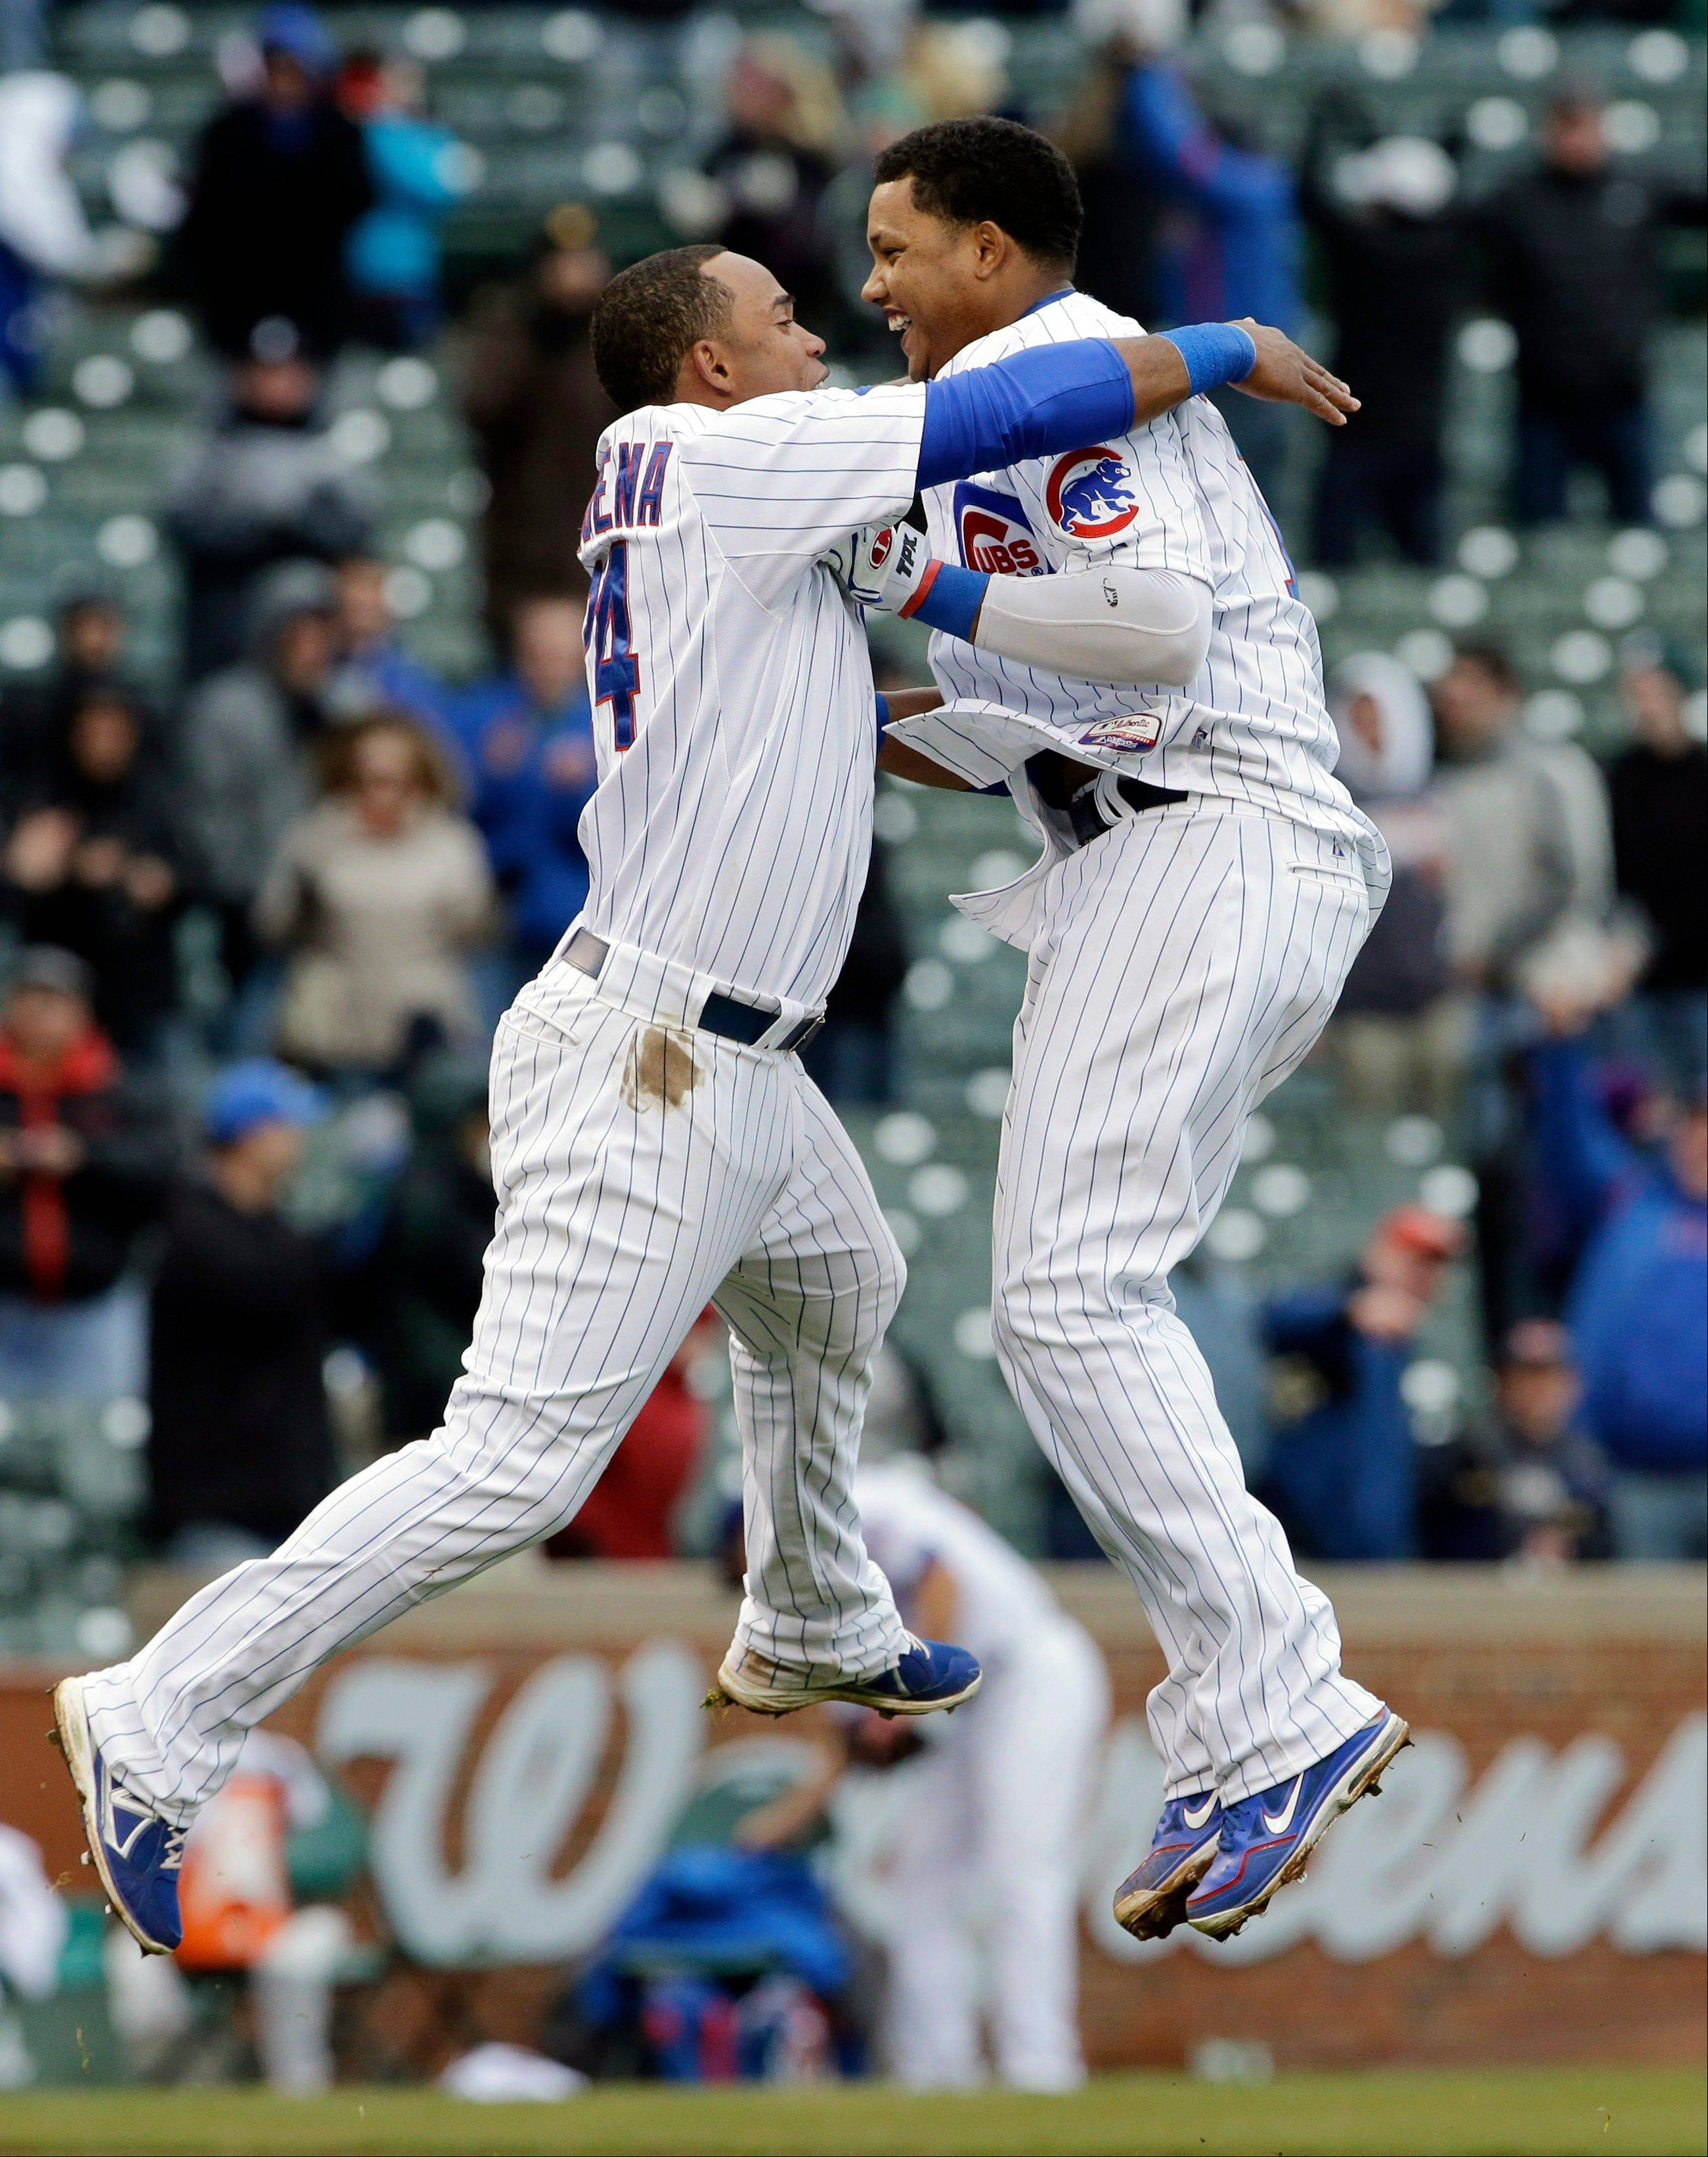 The Cubs' Starlin Castro, right, celebrates with teammate Luis Valbuena after hitting a game-winning double against the Giants in the ninth inning Friday at Wrigley Field.